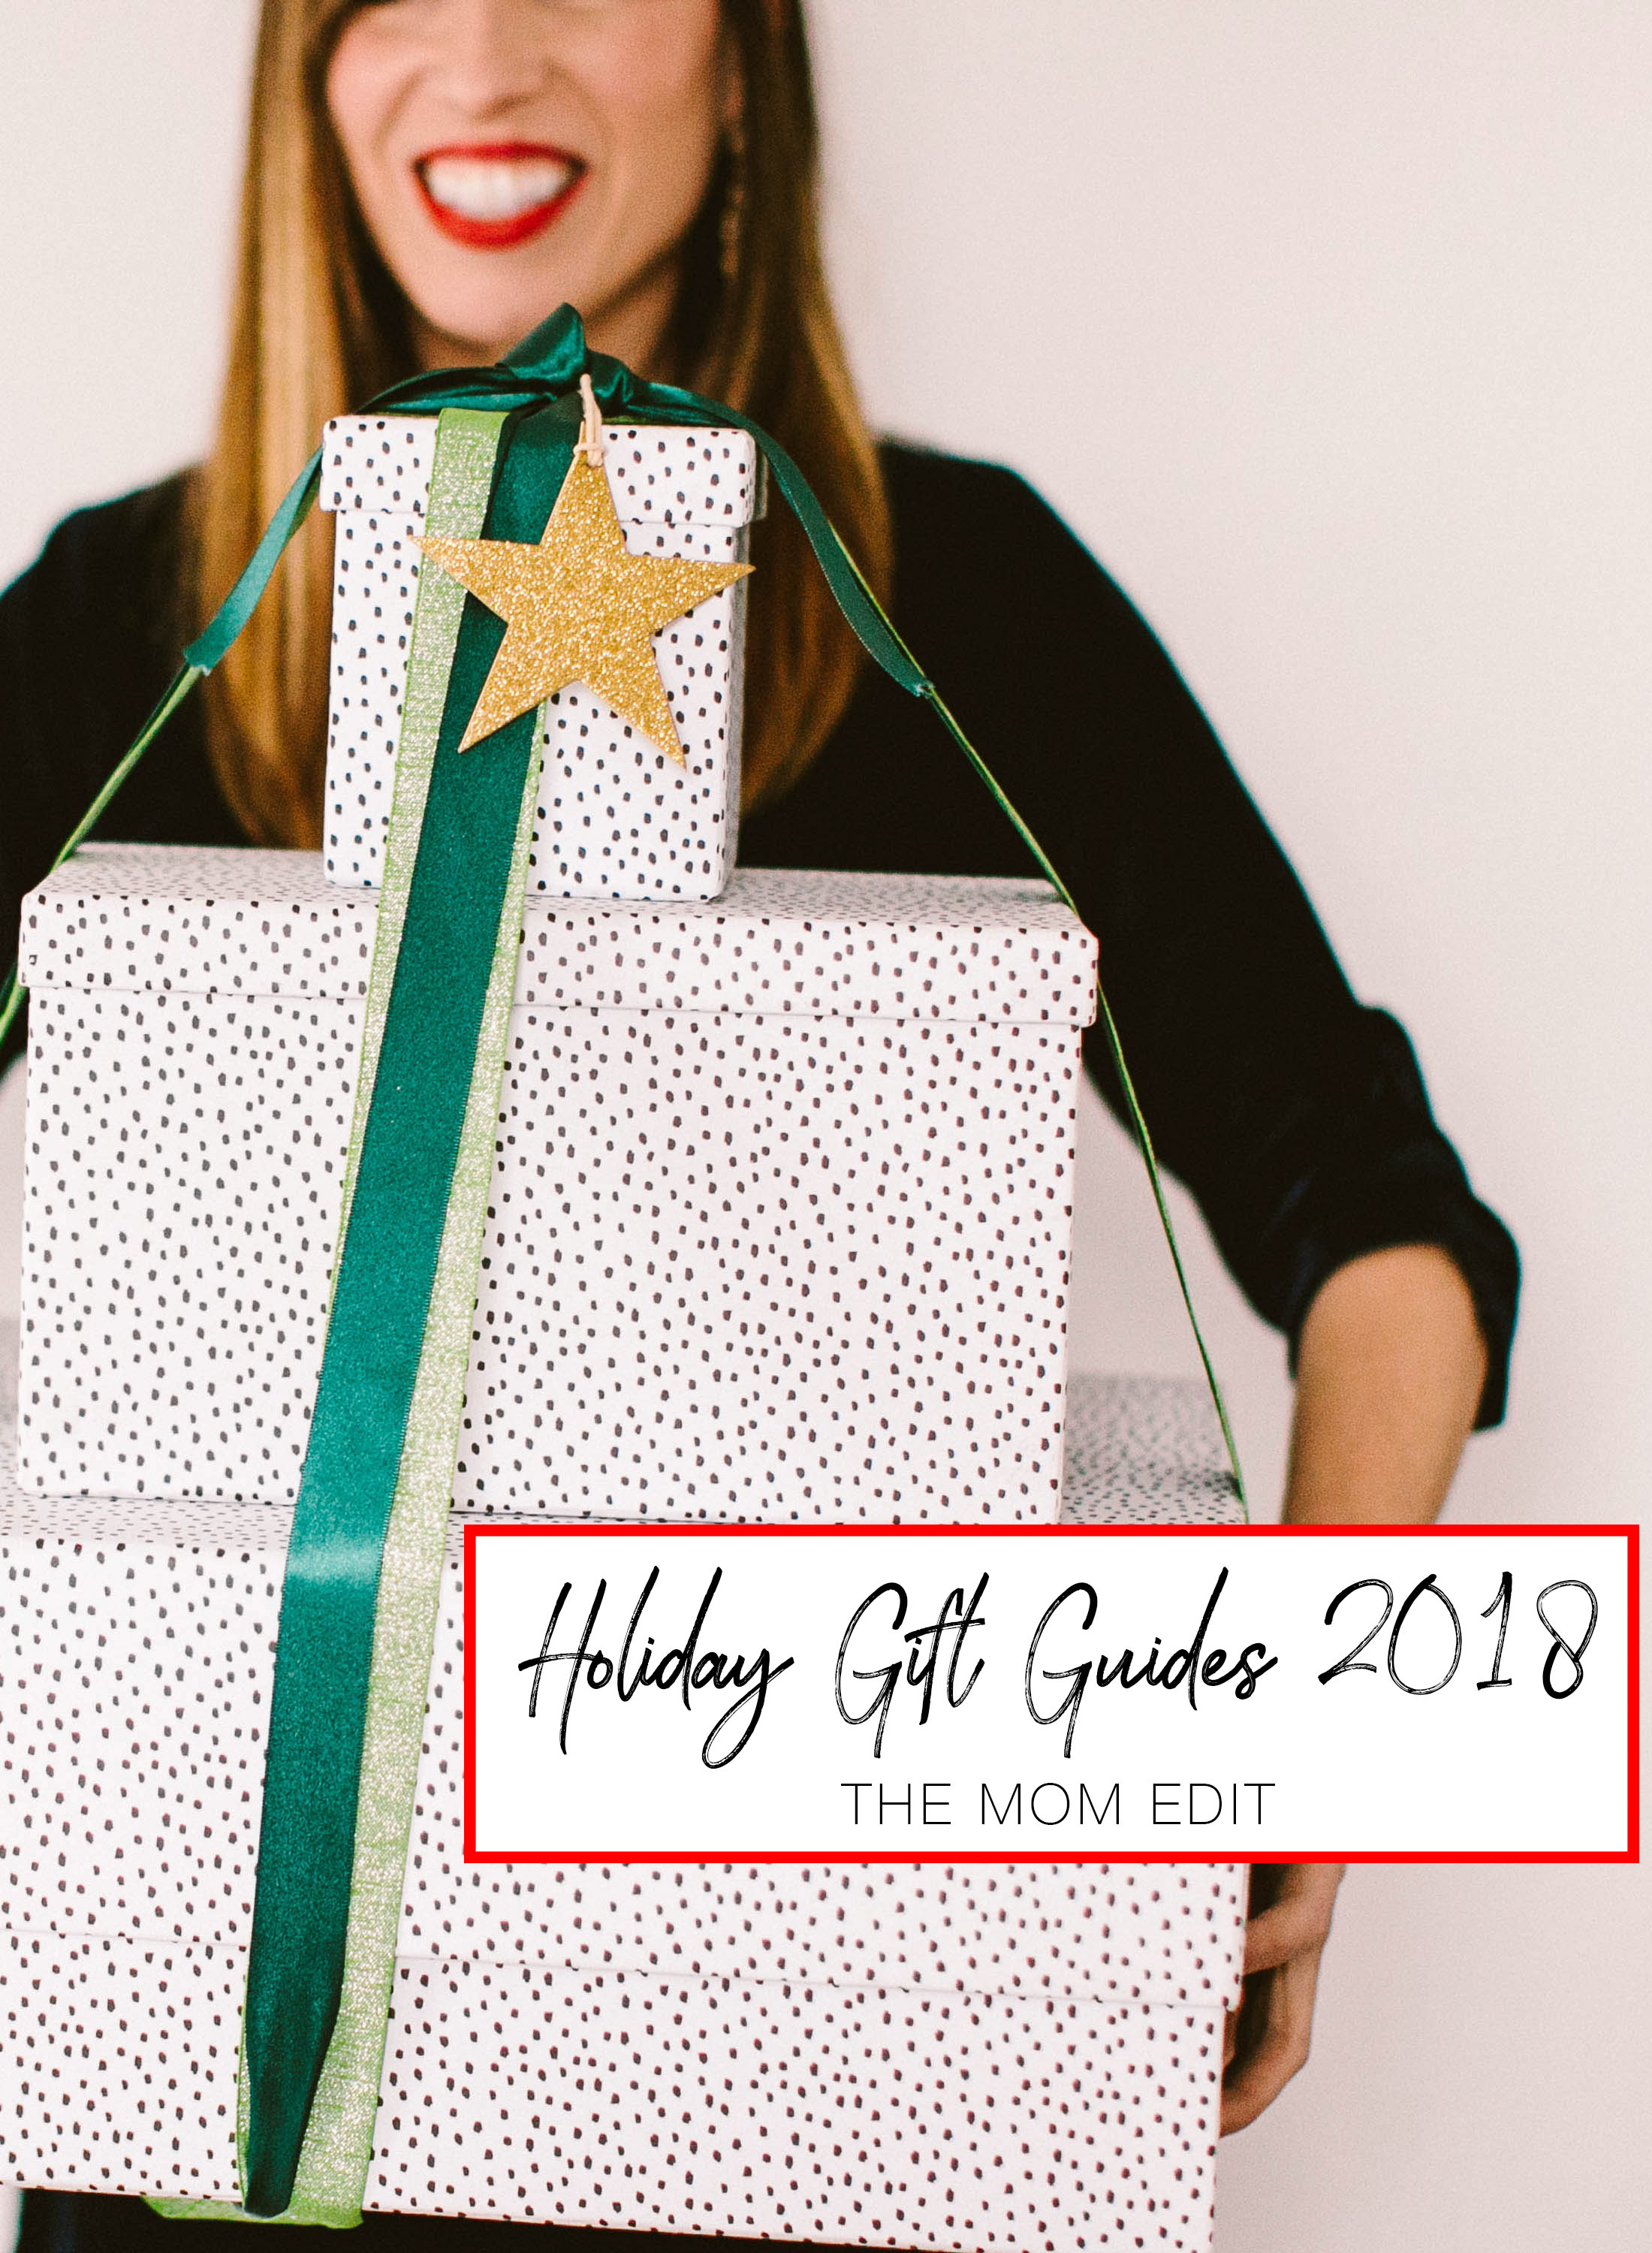 Happy holidays! Our gift to you this season is the best of the best in presents for moms, kids, friends, co-workers, partners & hostesses.